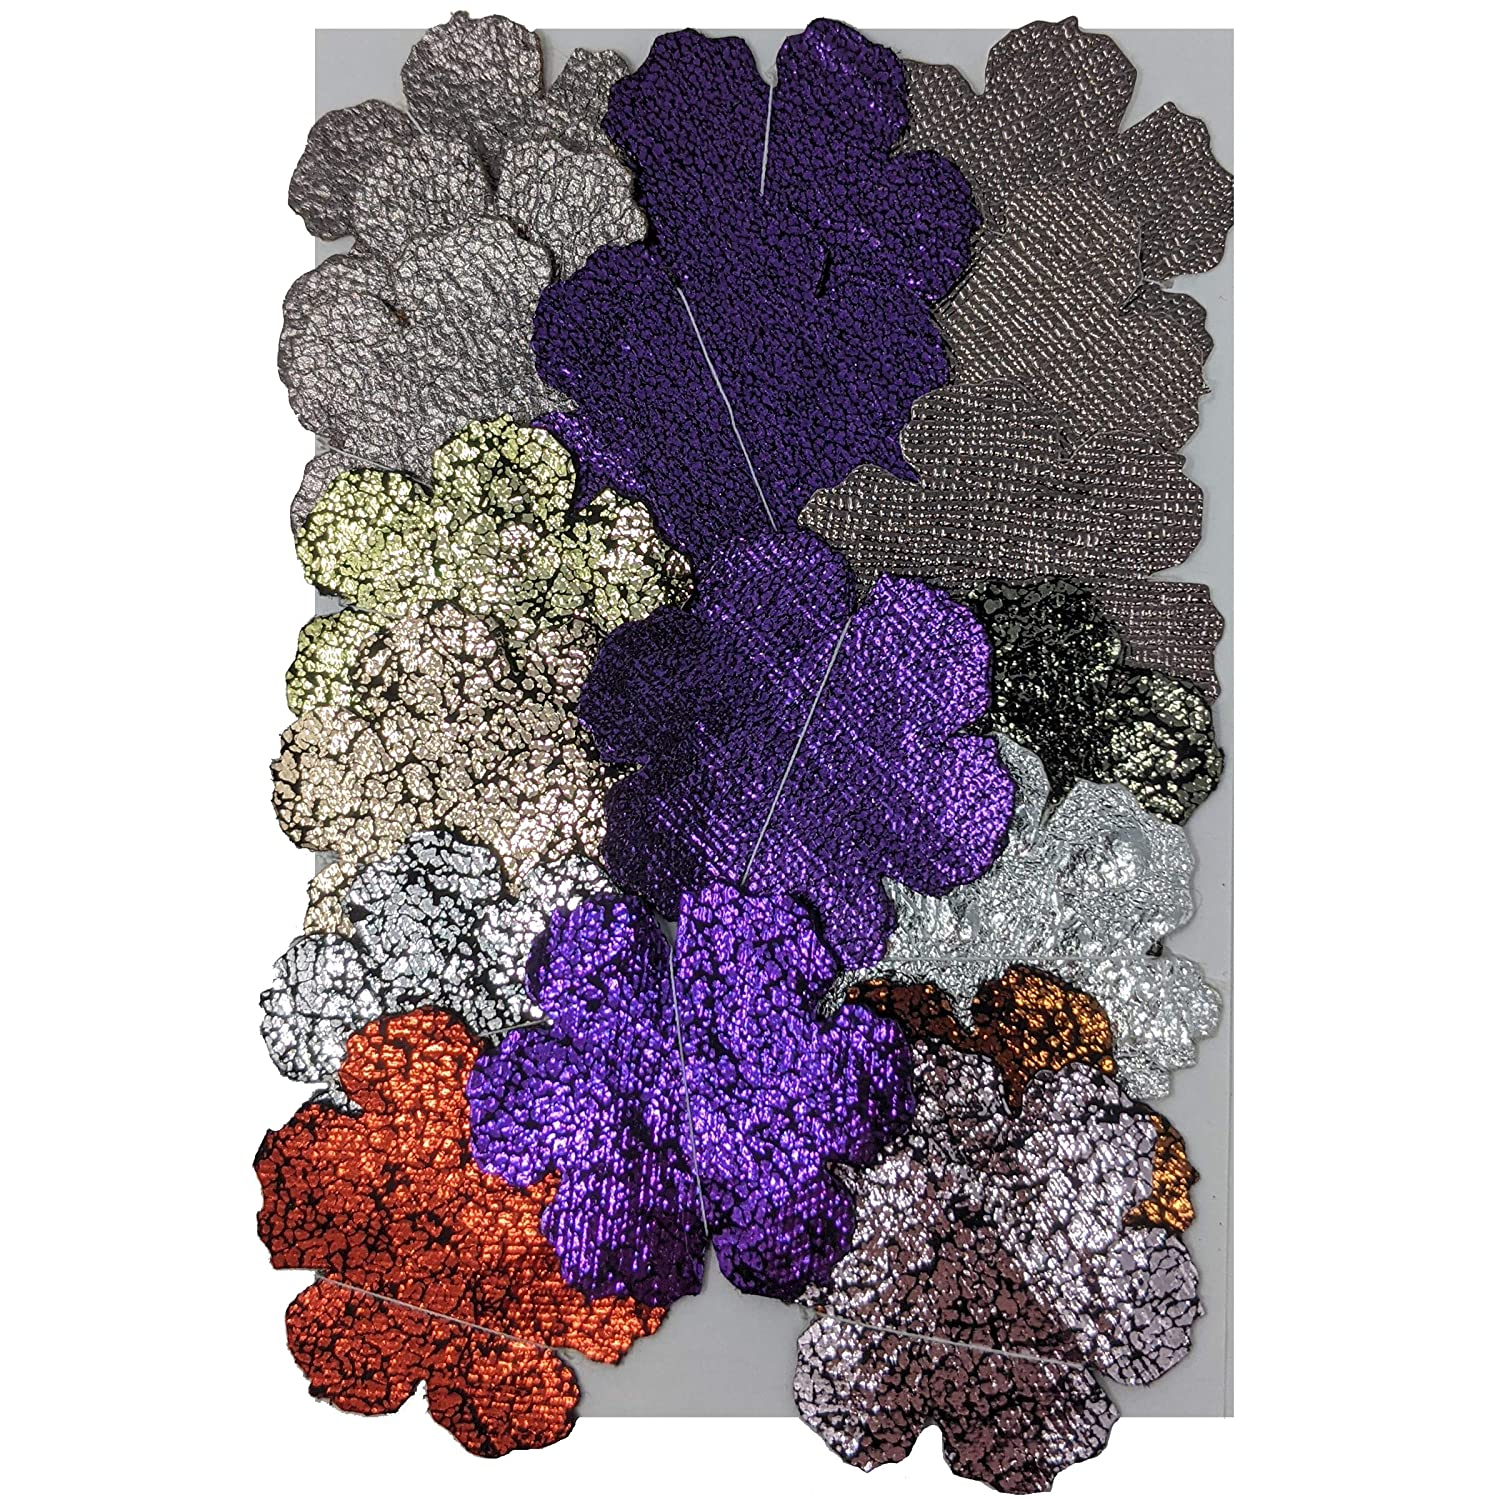 Colorful Shiny Textured Vinyl Industry No. 1 Cut Manufacturer OFFicial shop Flowers Die